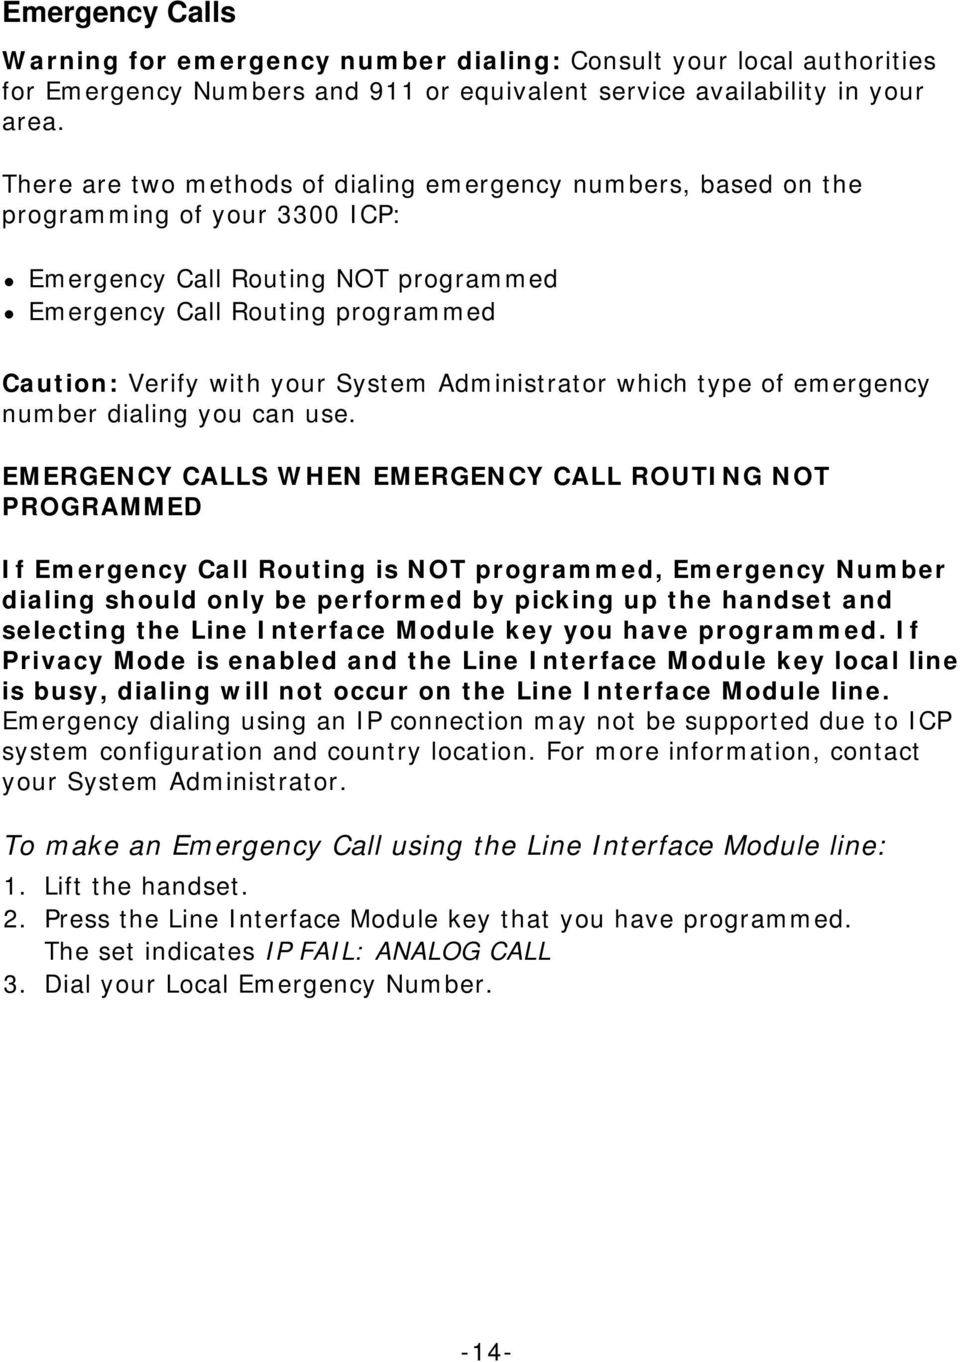 Administrator which type of emergency number dialing you can use.